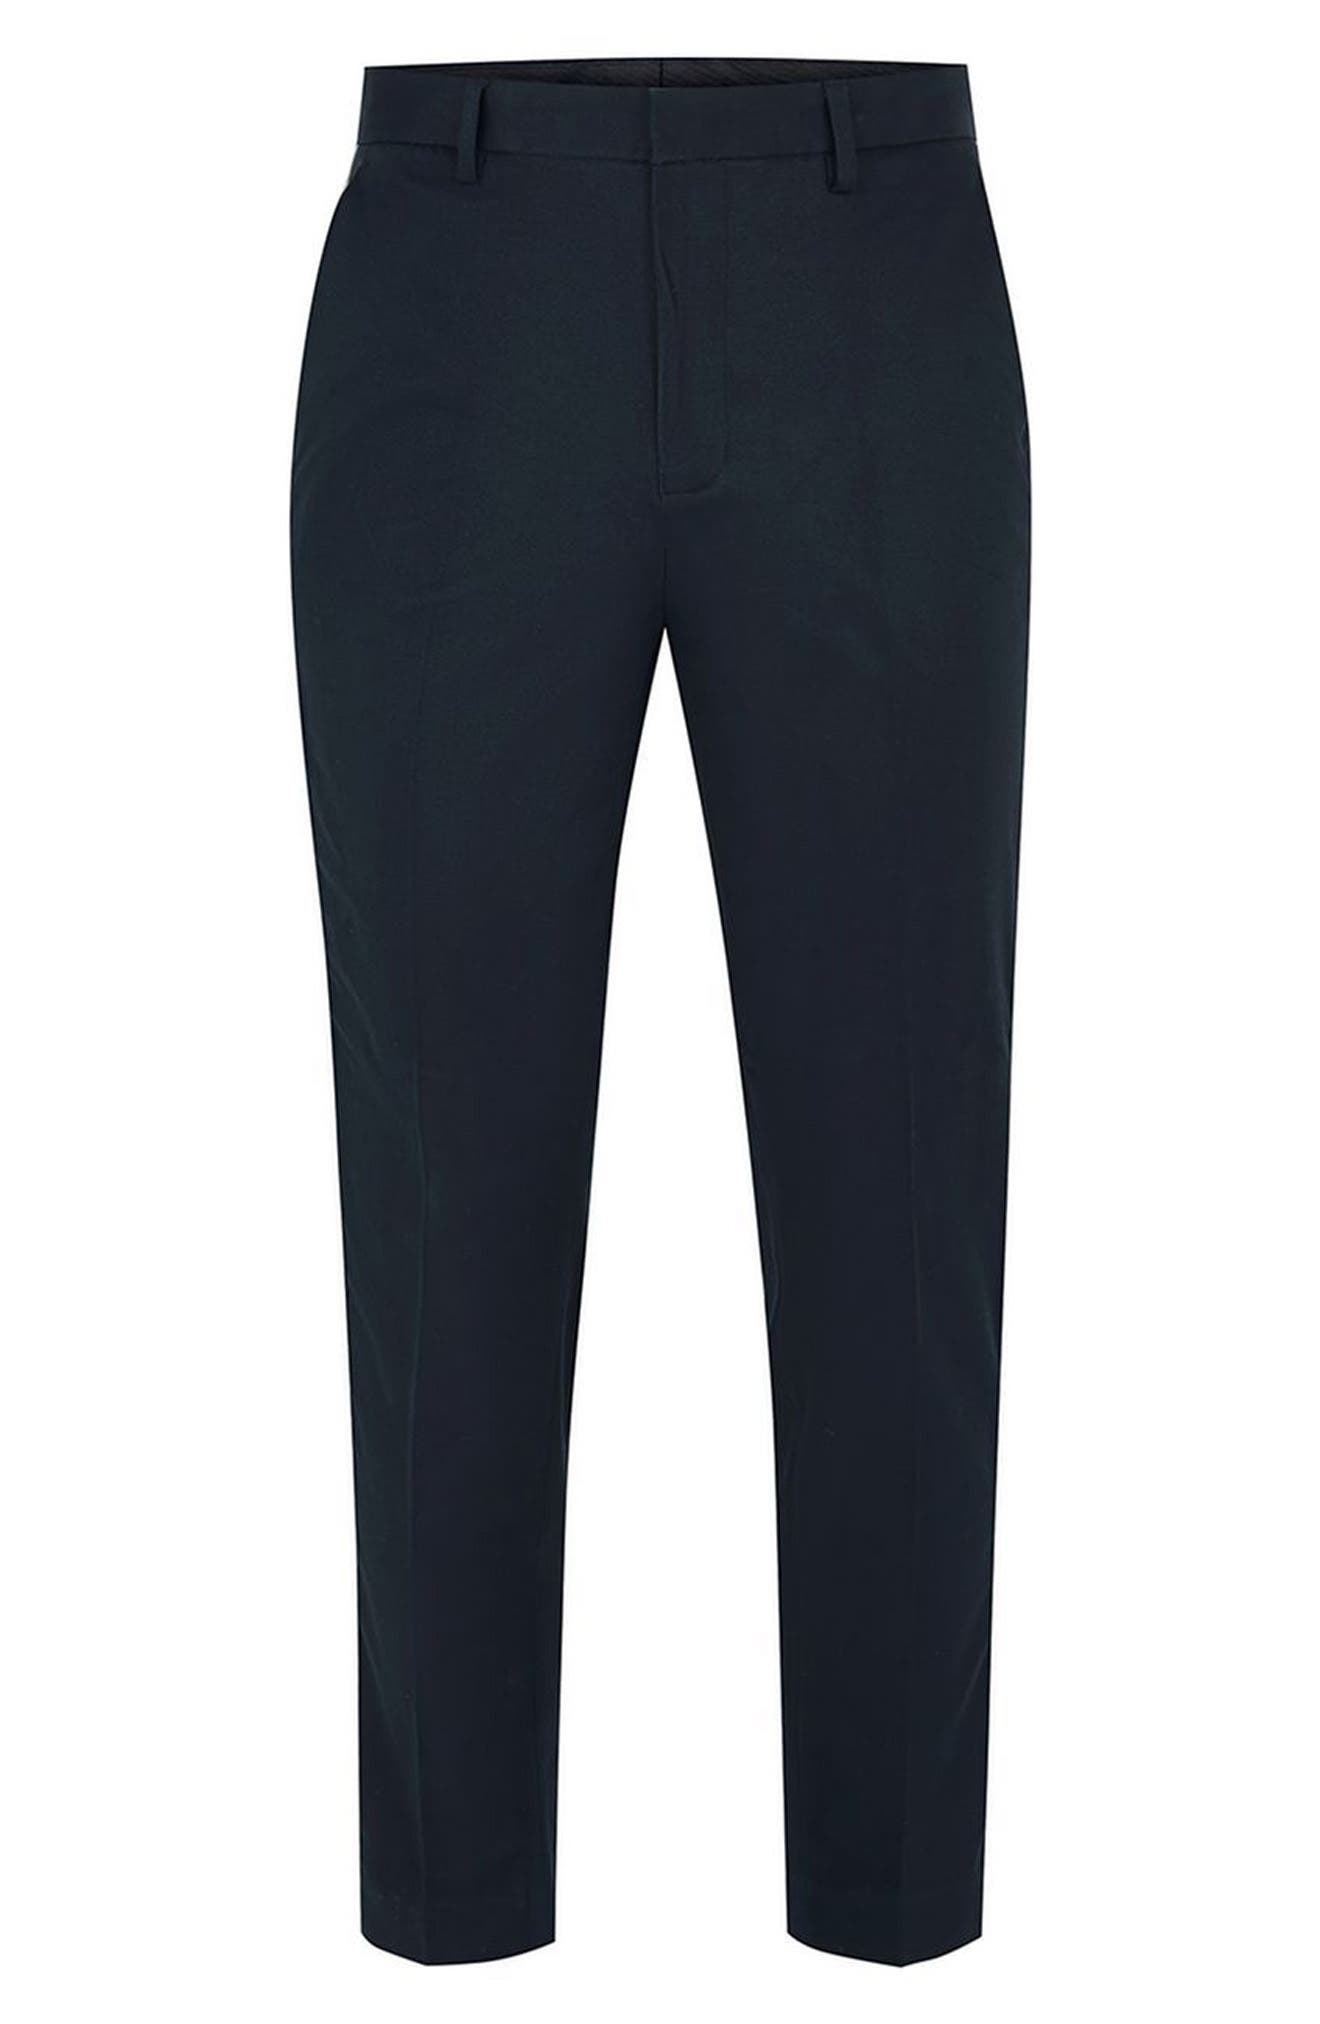 Skinny Fit Cropped Twill Trousers,                             Alternate thumbnail 4, color,                             Dark Blue Multi